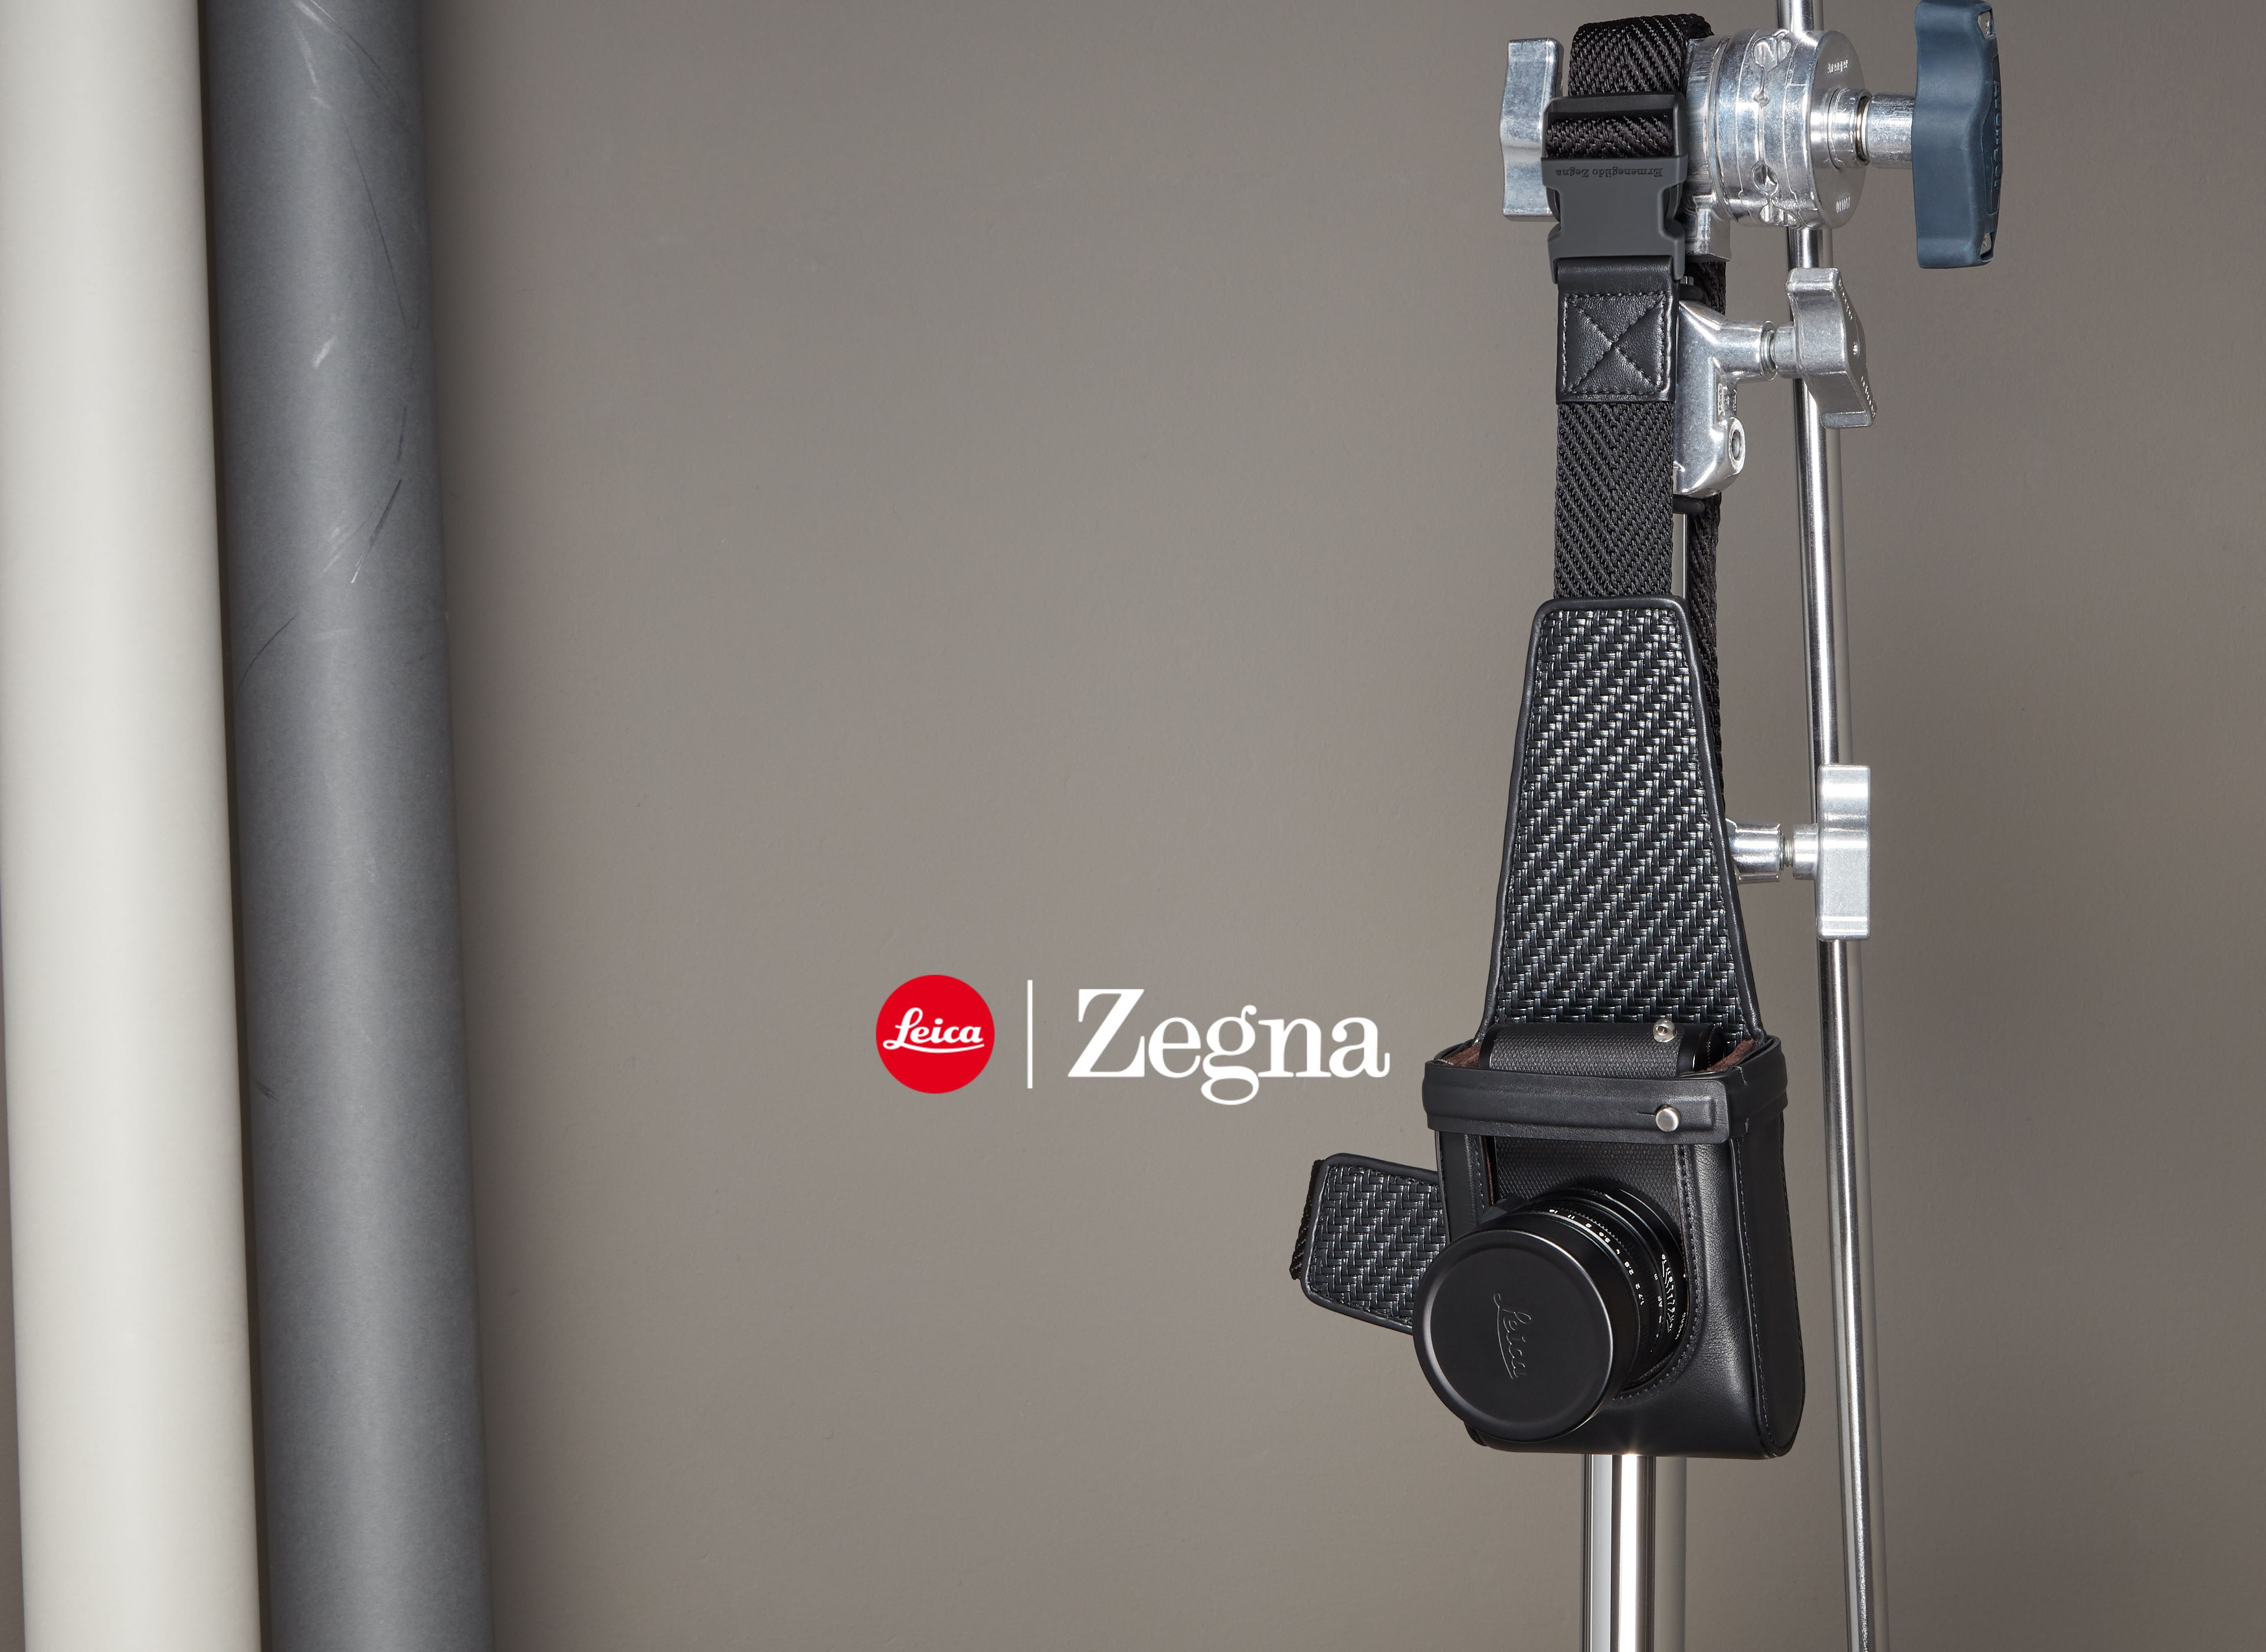 Leica x Zegna an exclusive collection of leather accessories